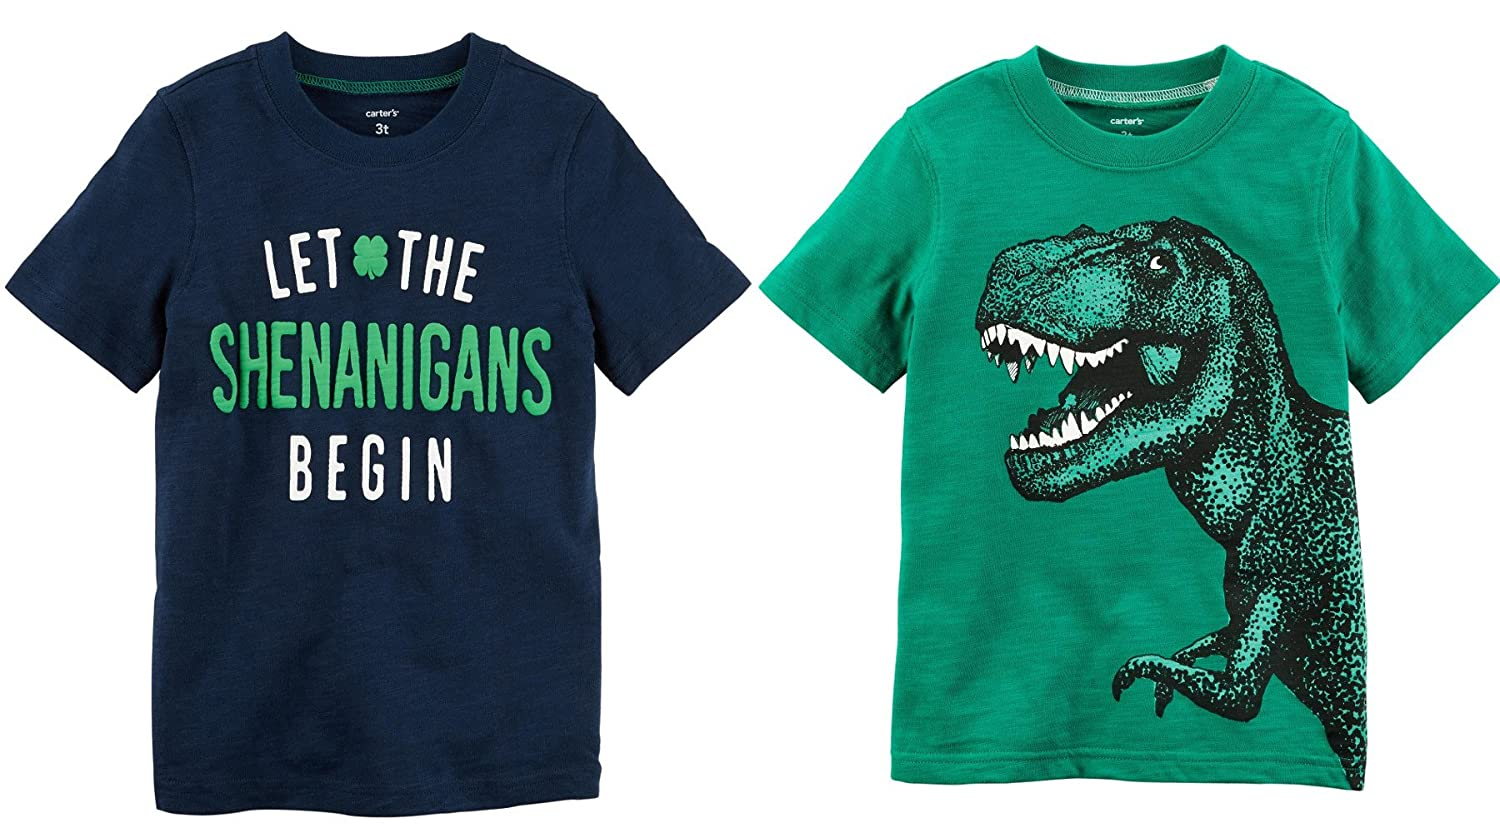 22e14744f Amazon.com : Carters Baby Toddler Little and Big Boys ST Patricks Day Set  Of 2 Short Sleeve Shirts (3 Months, Navy Let The Shenanigans Begin and  Green Dino) ...